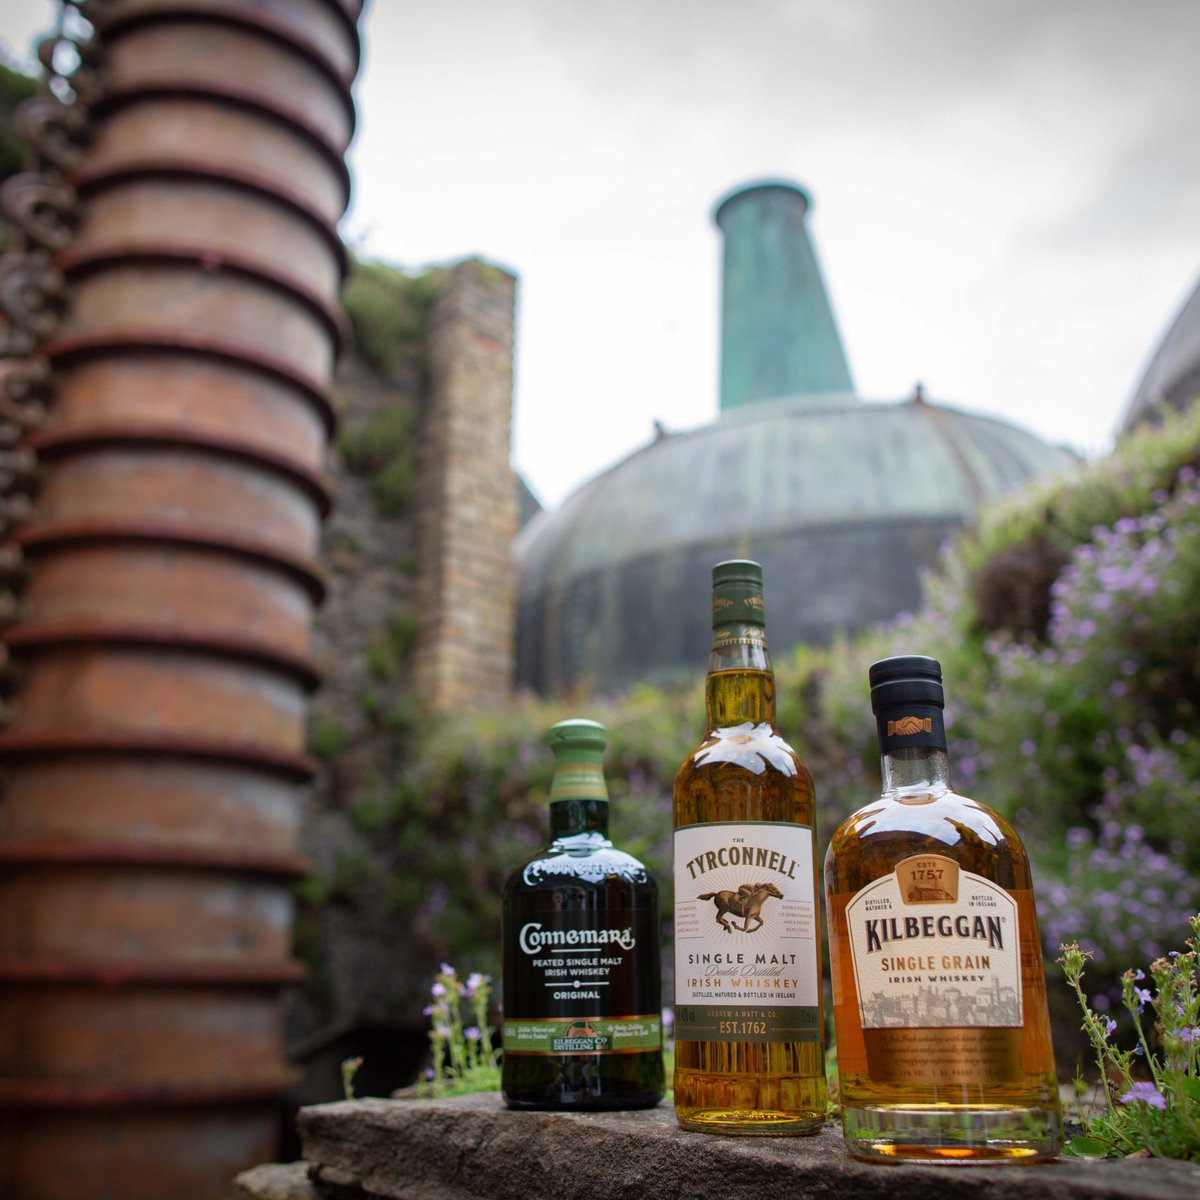 Here's to a sweetheart, a bottle (or three), and a friend. The first beautiful, the second full, the last ever faithful. #WeAreKilbeggan #KilbegganWhiskey #StPatricksDay https://t.co/pQAP0brPF4